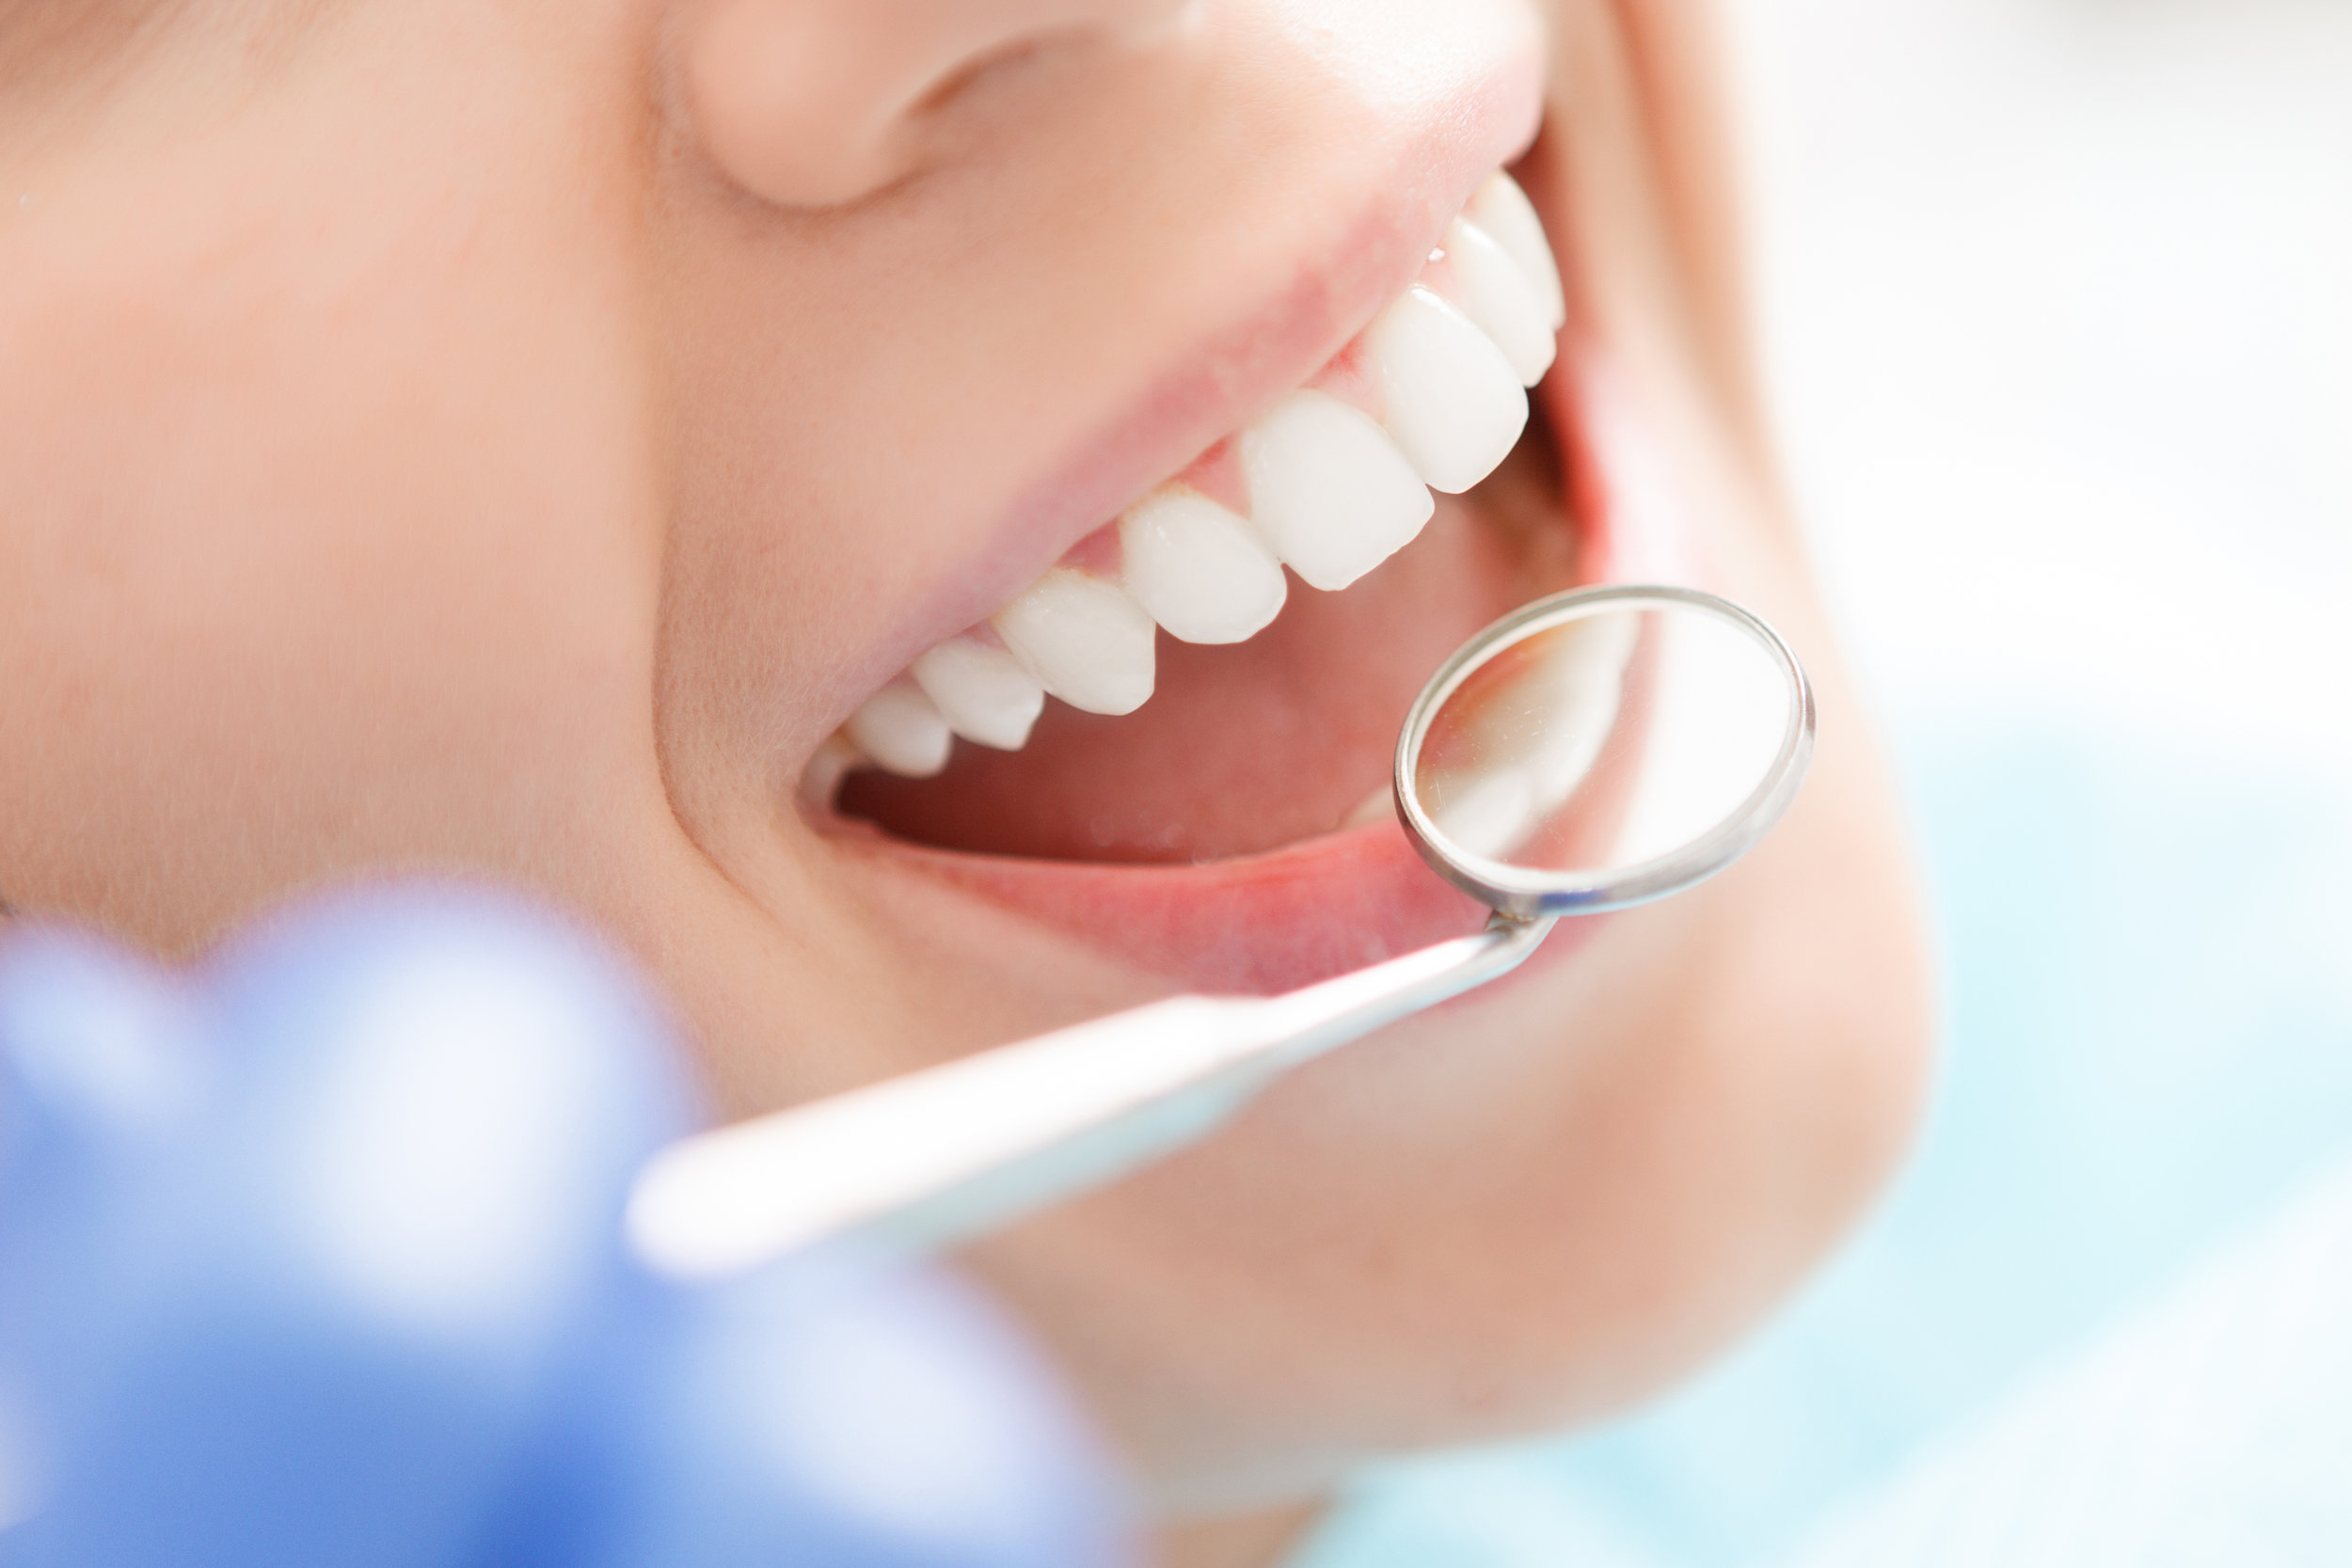 Dentists and primary care physicians (PCP) are often the first line of detection and treatment for the public. Dentists potentially see their patients much more frequently than physicians, especially those who adhere to the recommended cleaning every 6 month.